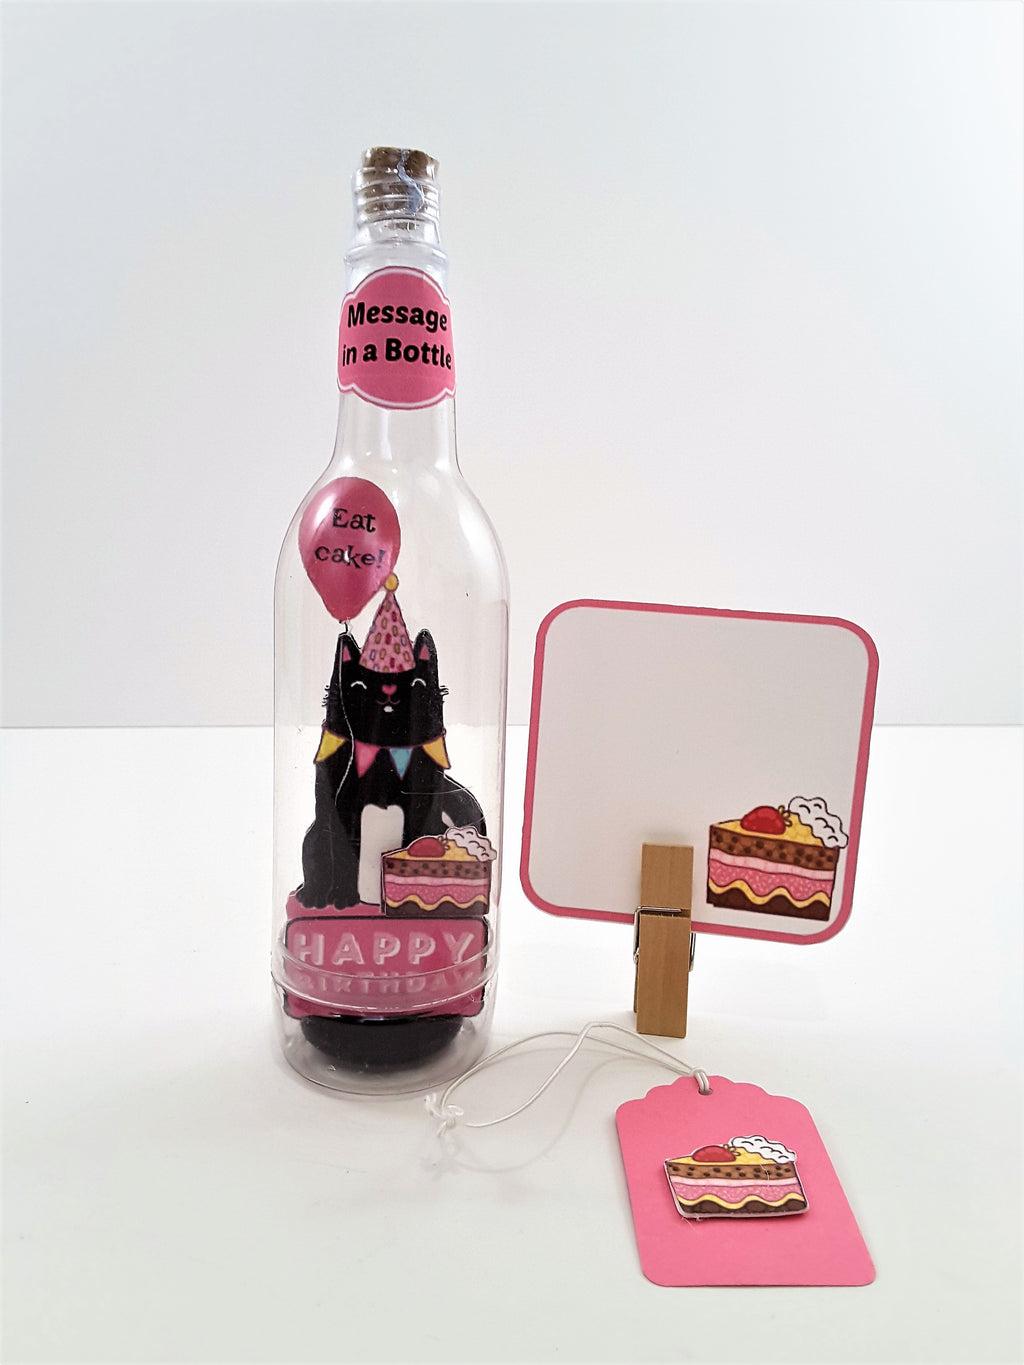 3D BIRTHDAY KITTY GREETING CARD MESSAGE IN A BOTTLE